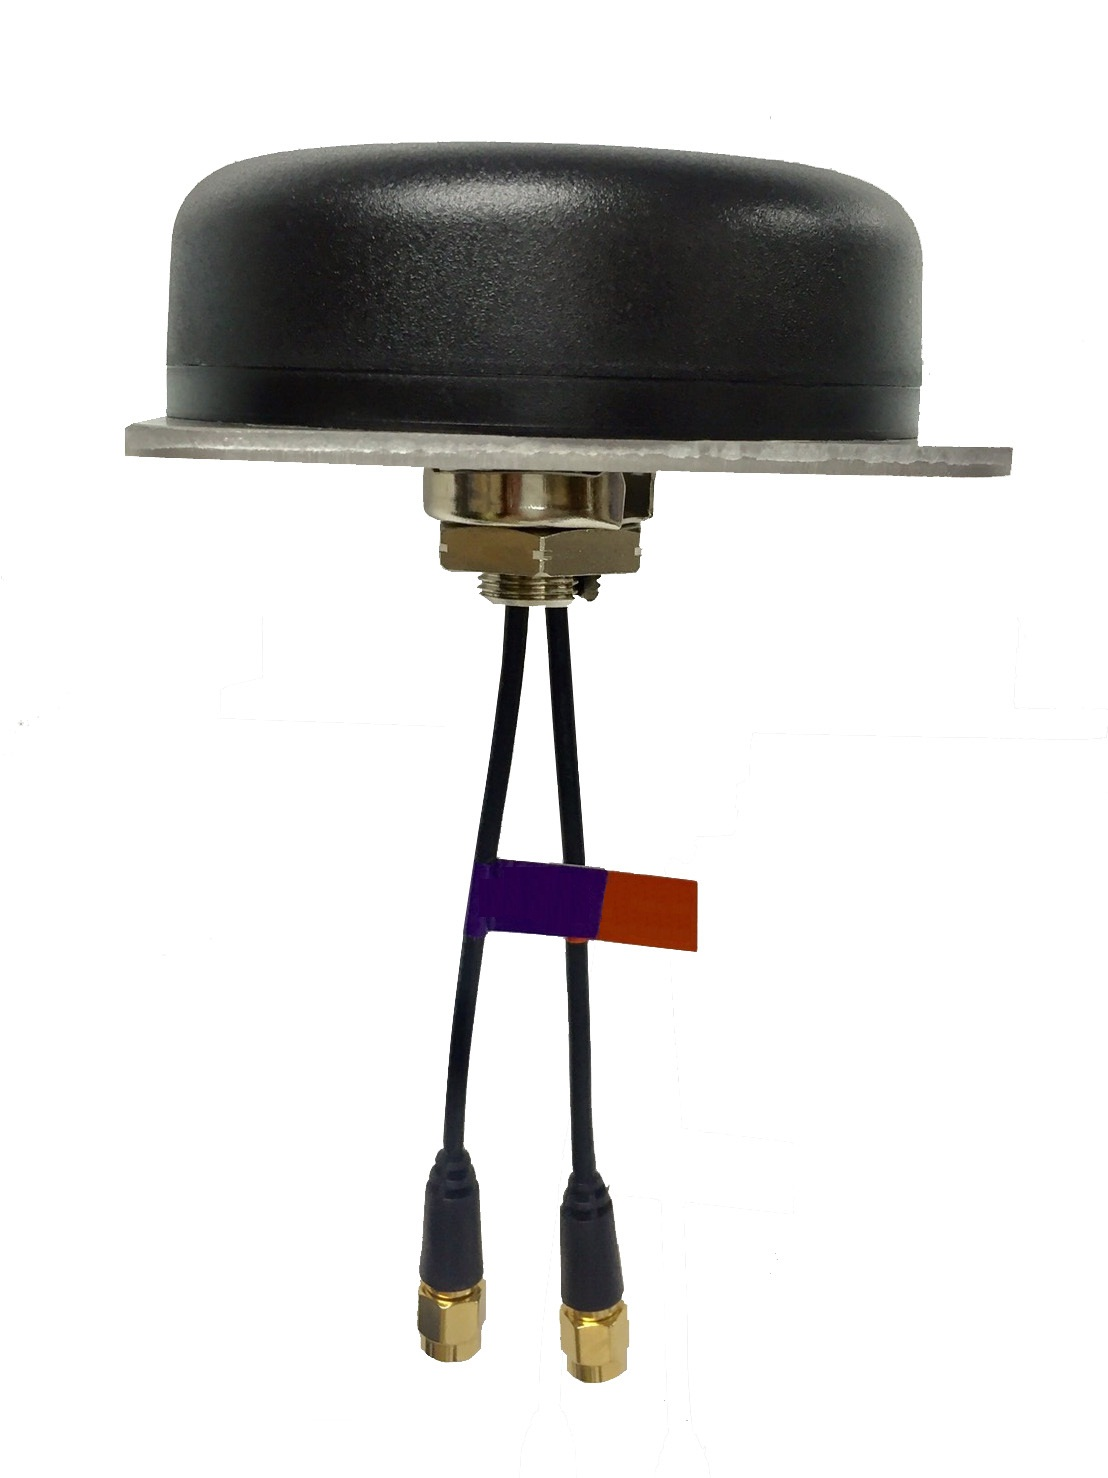 Automobile Car Combined  Antennas for Car Electronic Accessories made by Chinmore Industry Co., LTD. 竣茂工業有限公司 - MatchSupplier.com